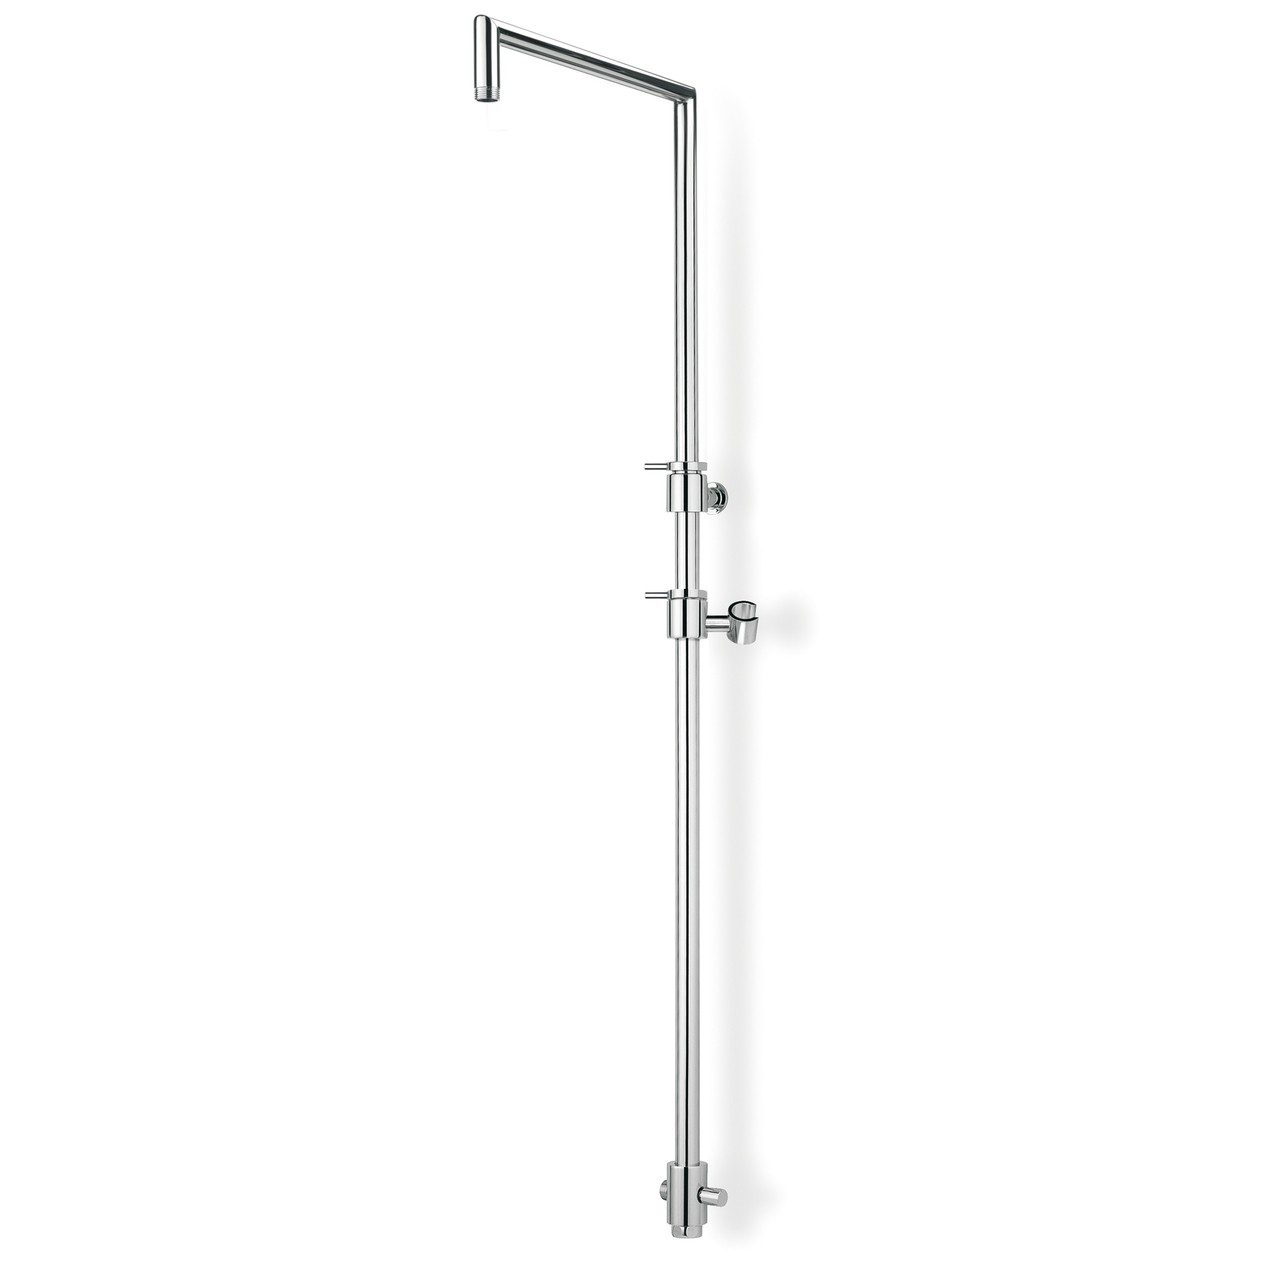 Telescopic square shower column with sliding bar